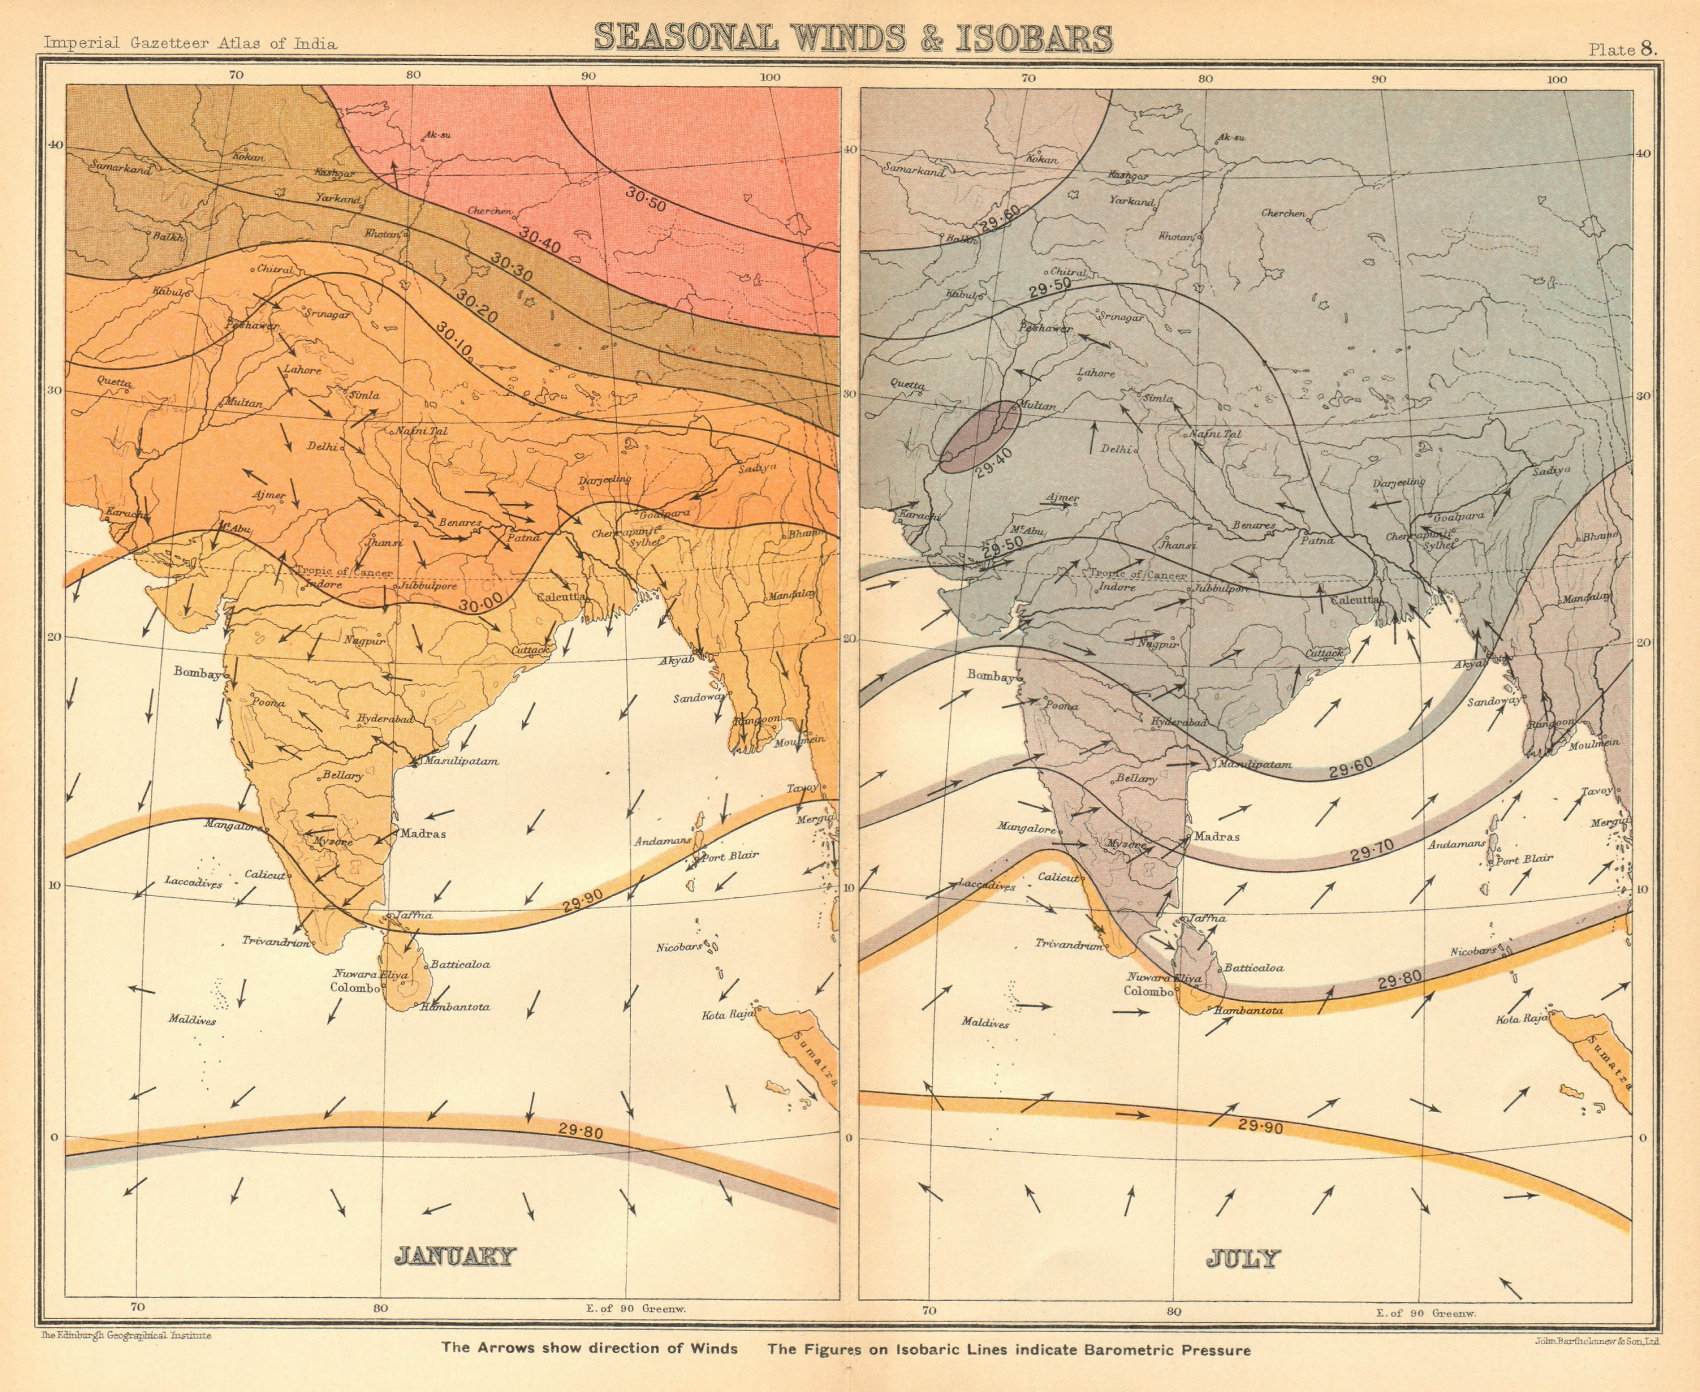 Associate Product SOUTH ASIA. British India. Seasonal Winds and Isobars - January & July 1931 map